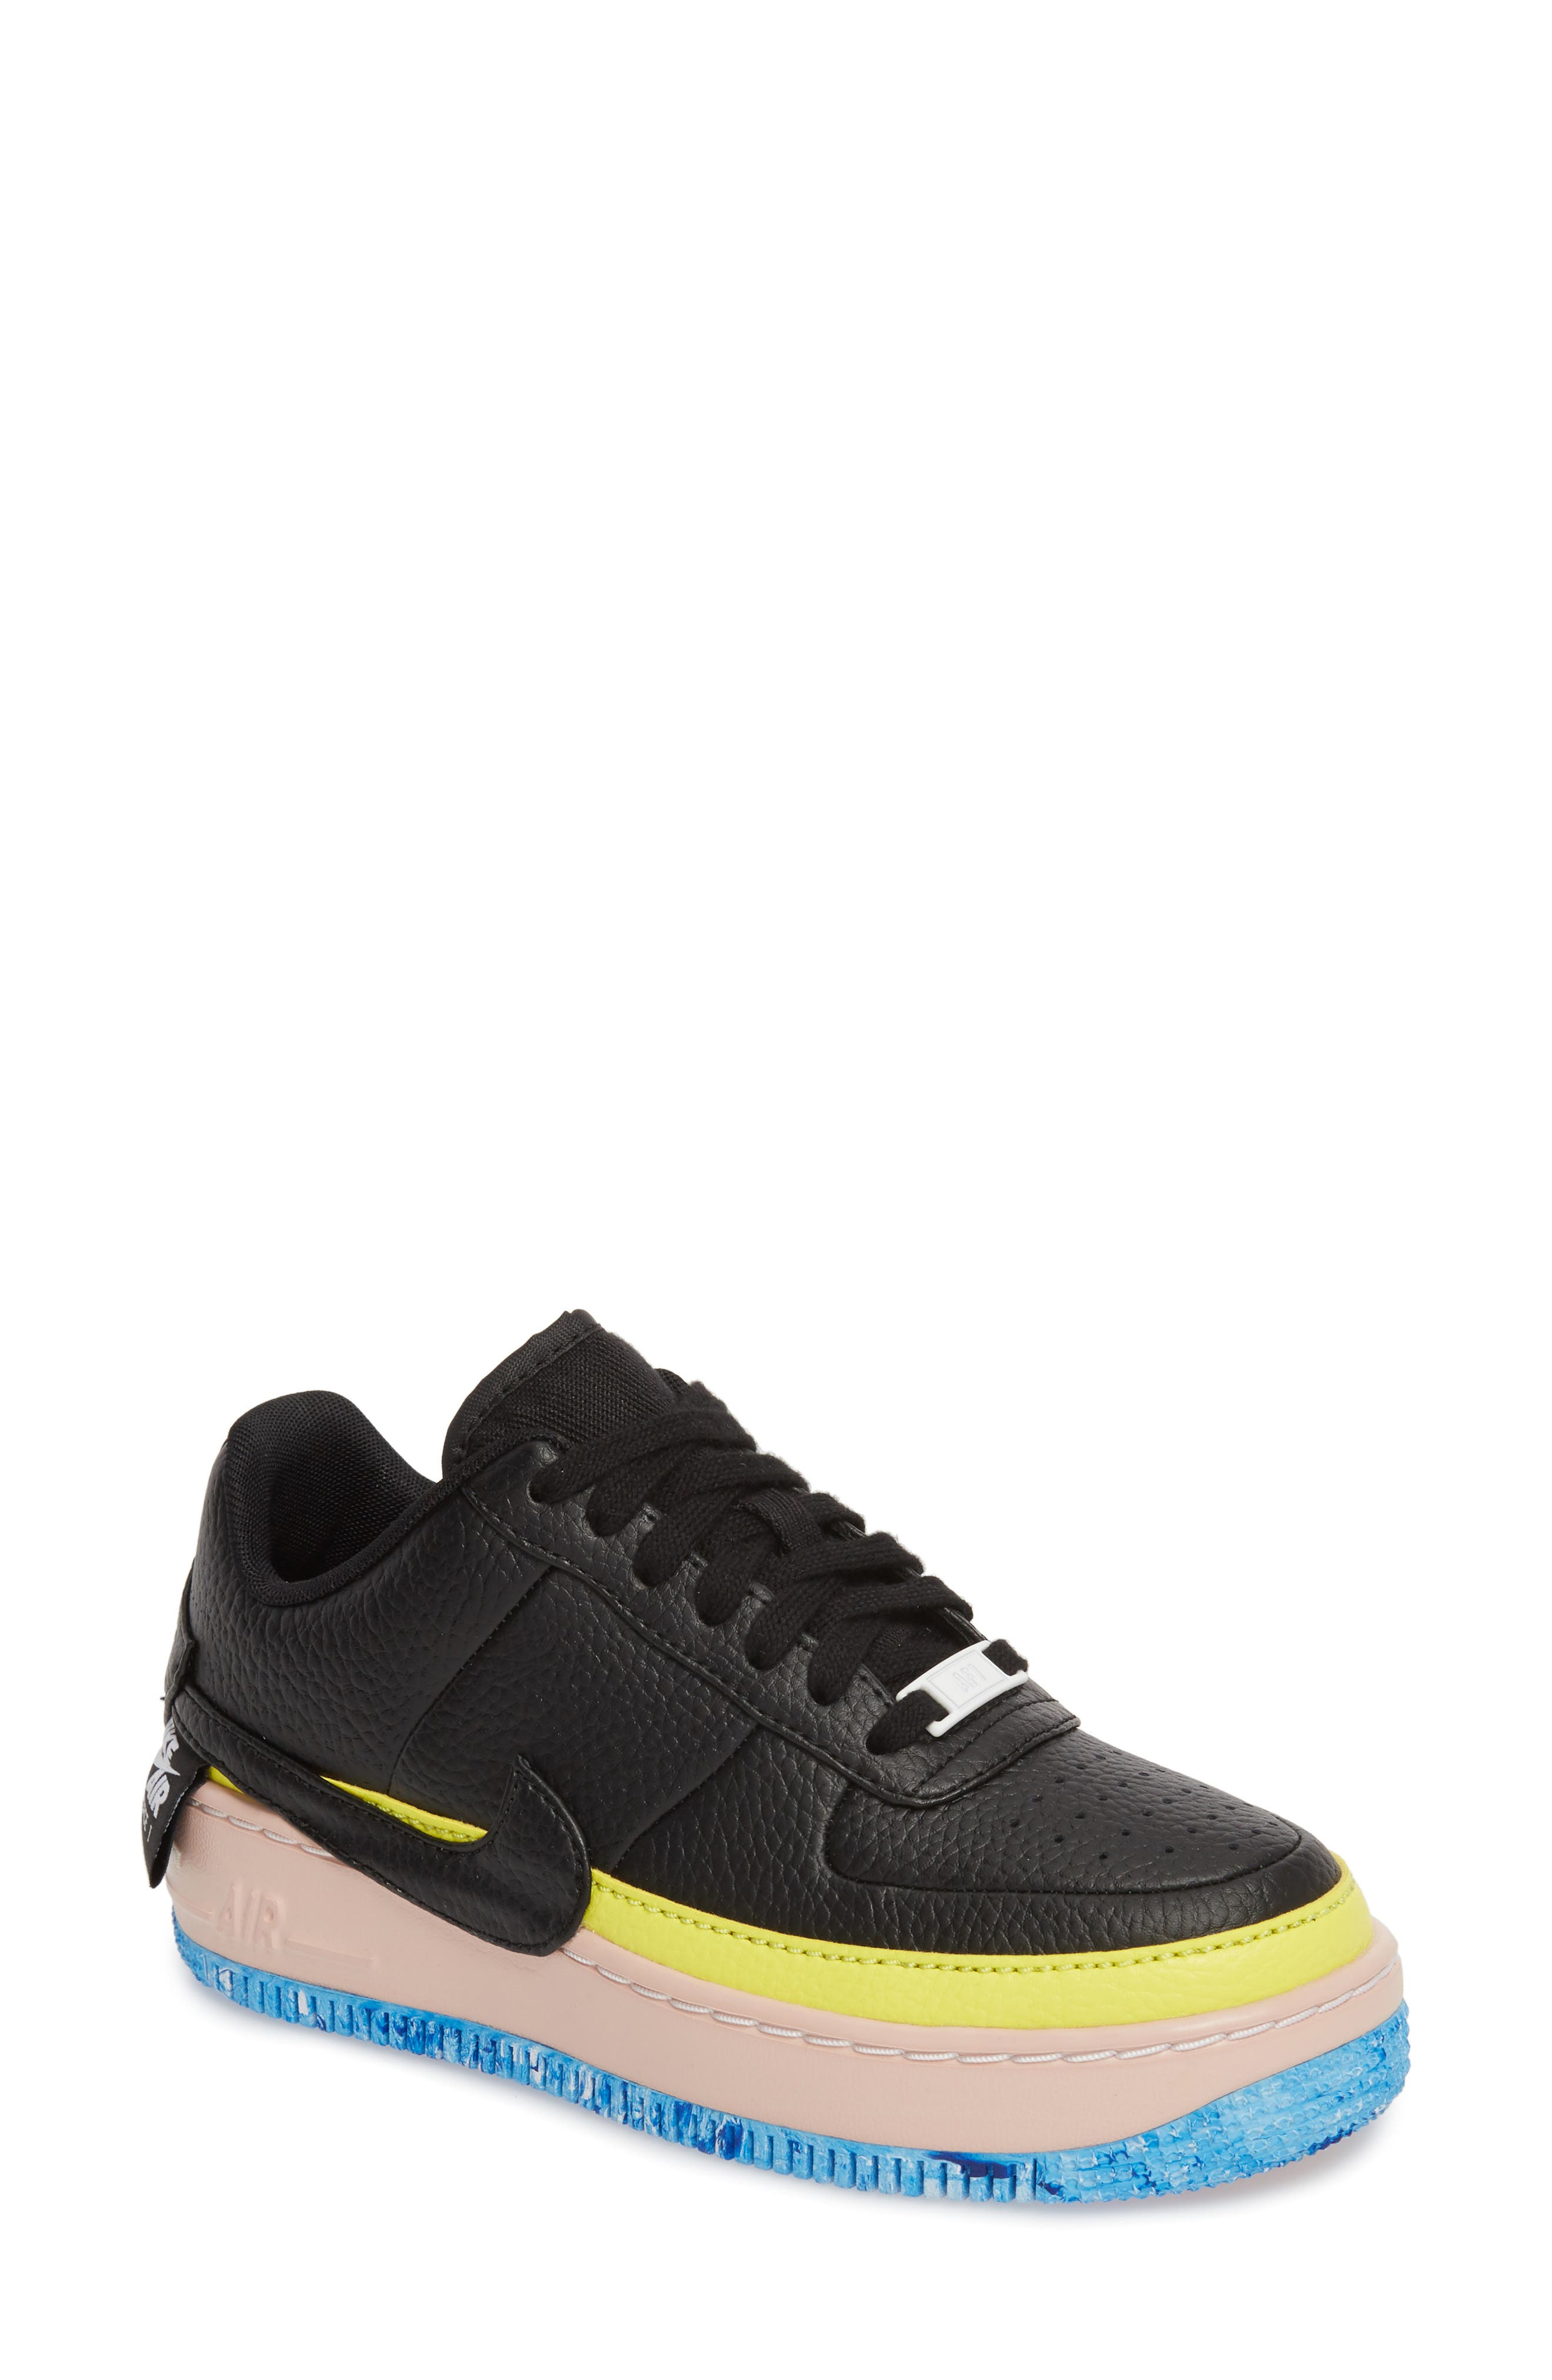 Air Force 1 Jester XX Sneaker,                         Main,                         color, BLACK/ SONIC YELLOW/ ORANGE